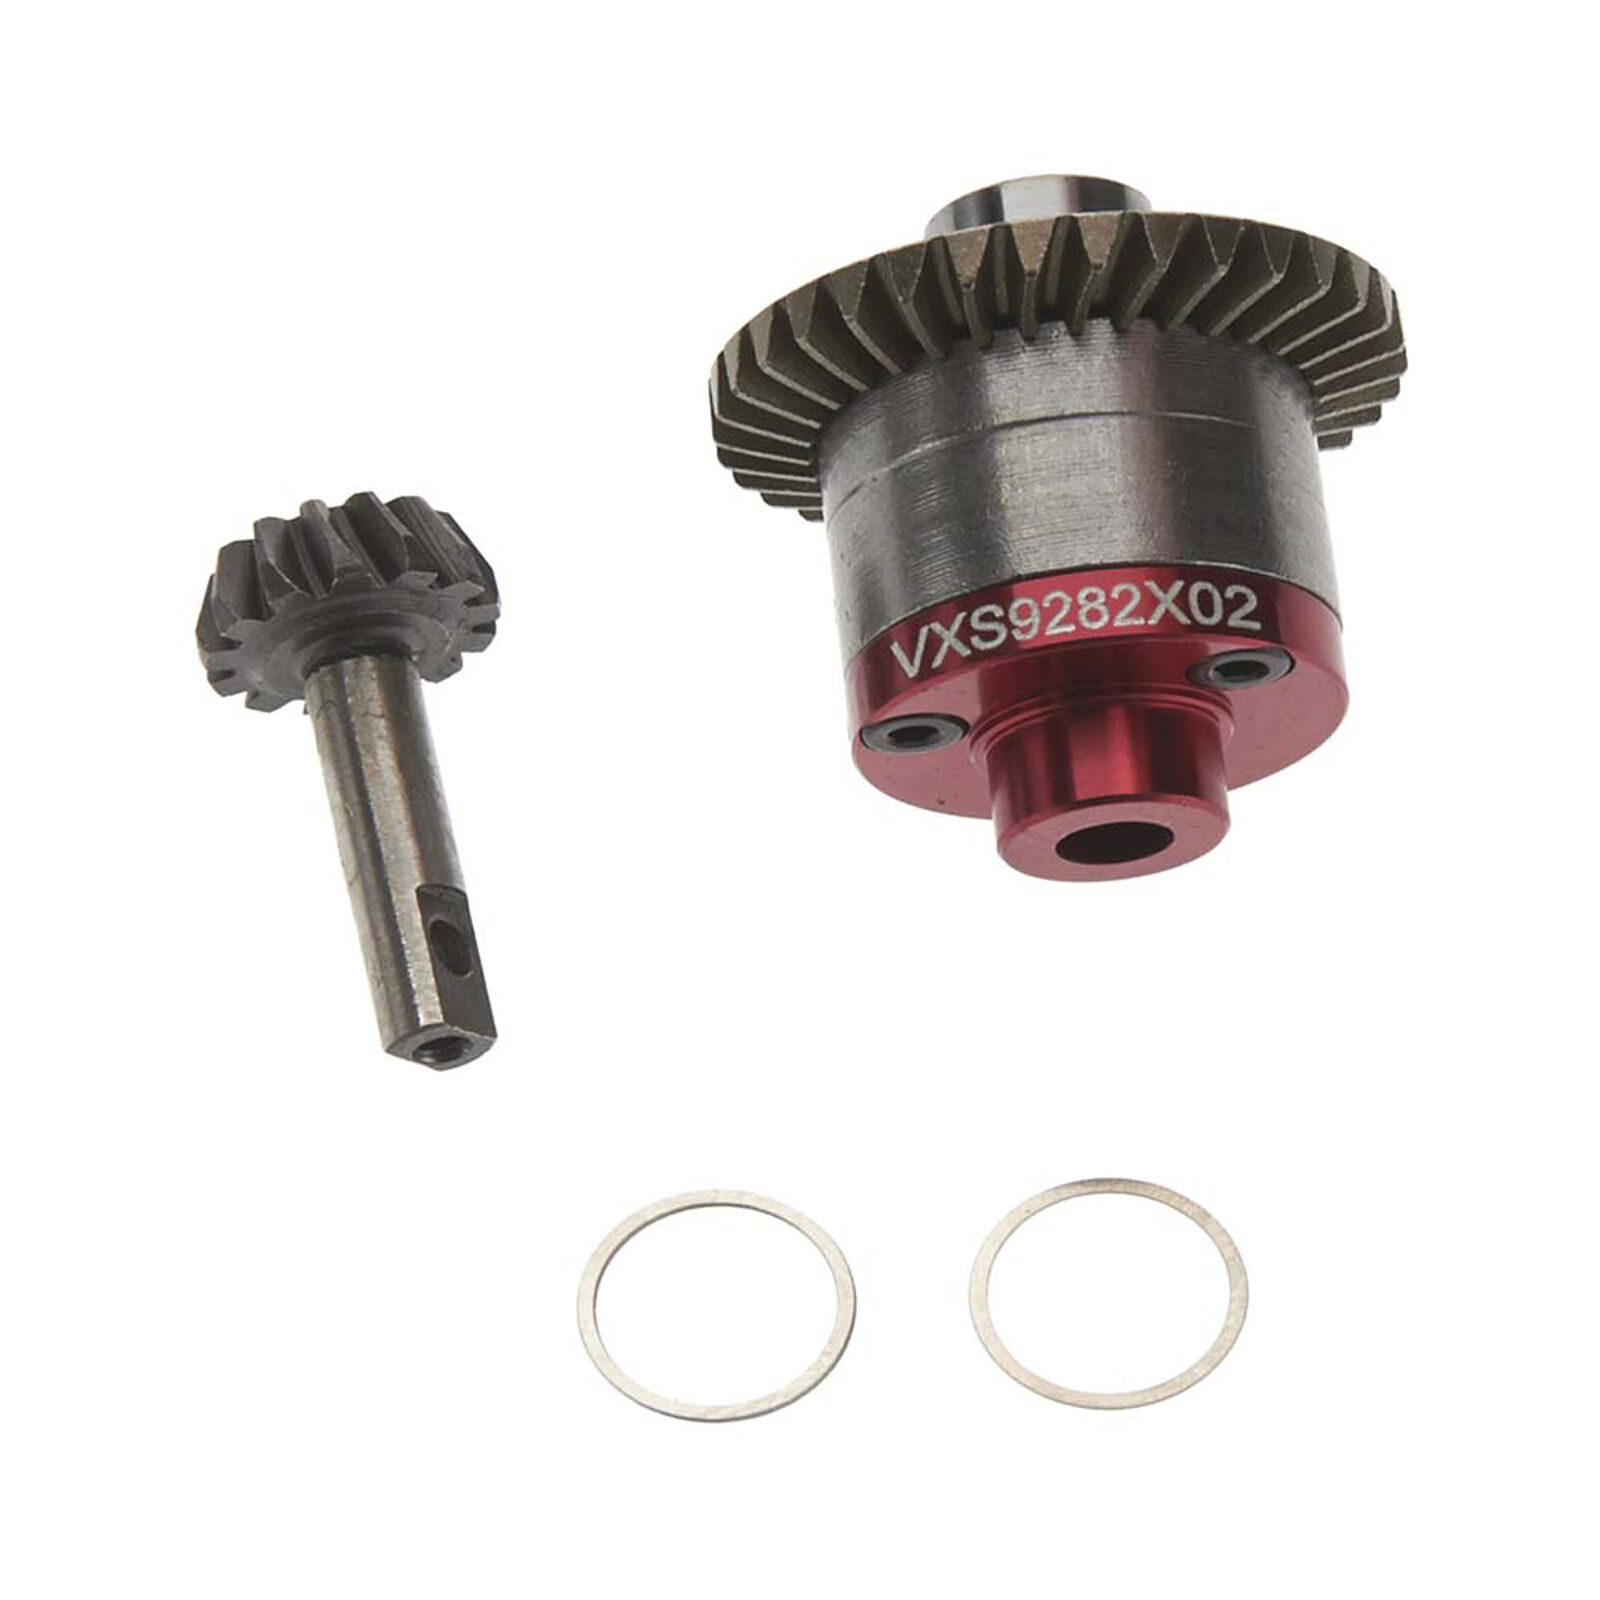 Steel Spiral Gear Set with Aluminum Cover Plate: Traxxas 1/16